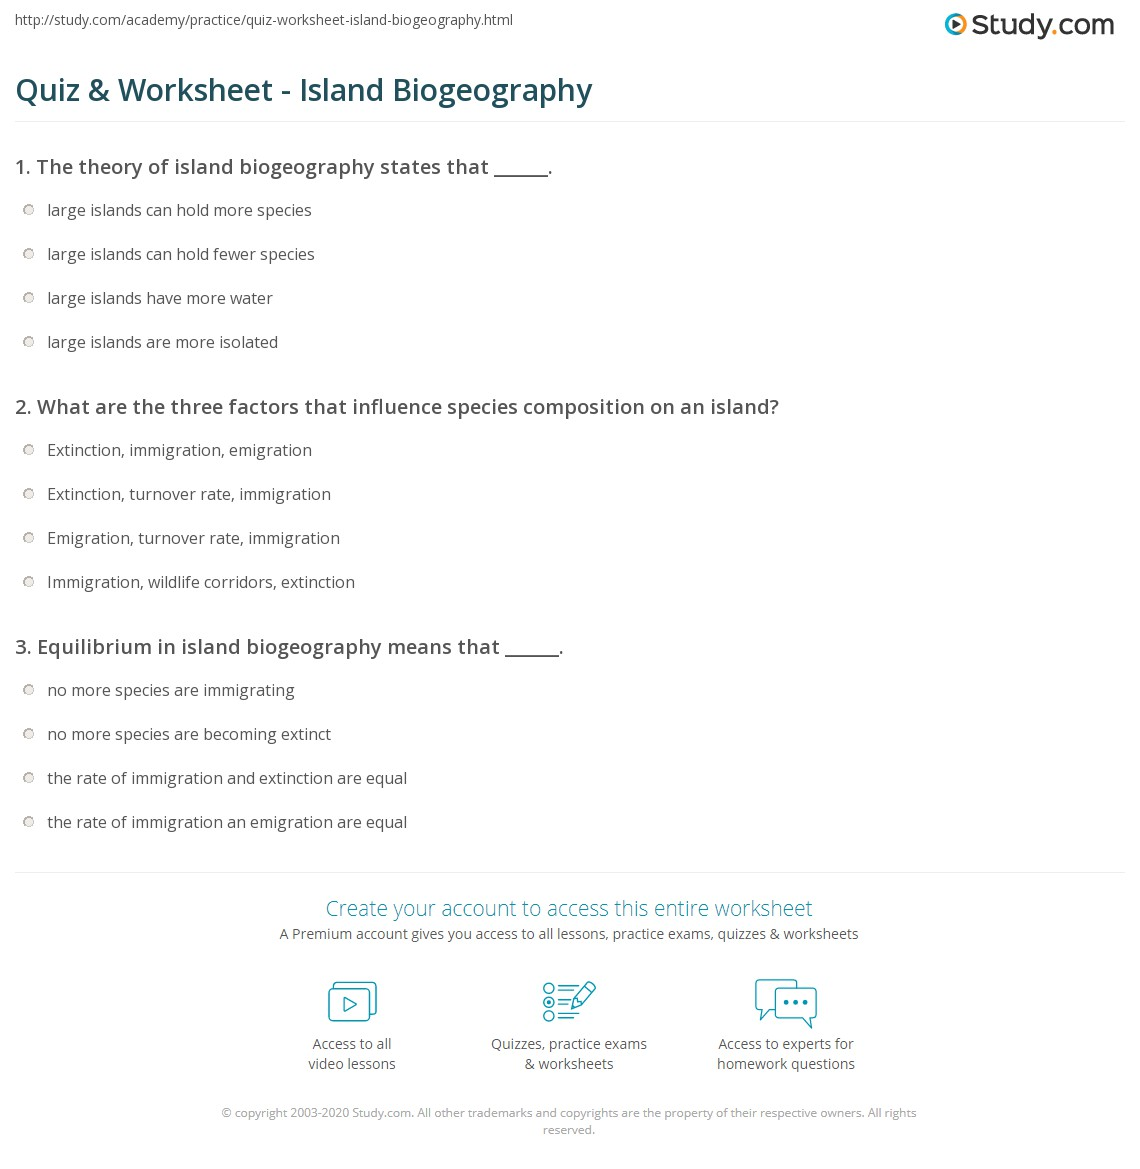 Quiz & Worksheet Island Biogeography